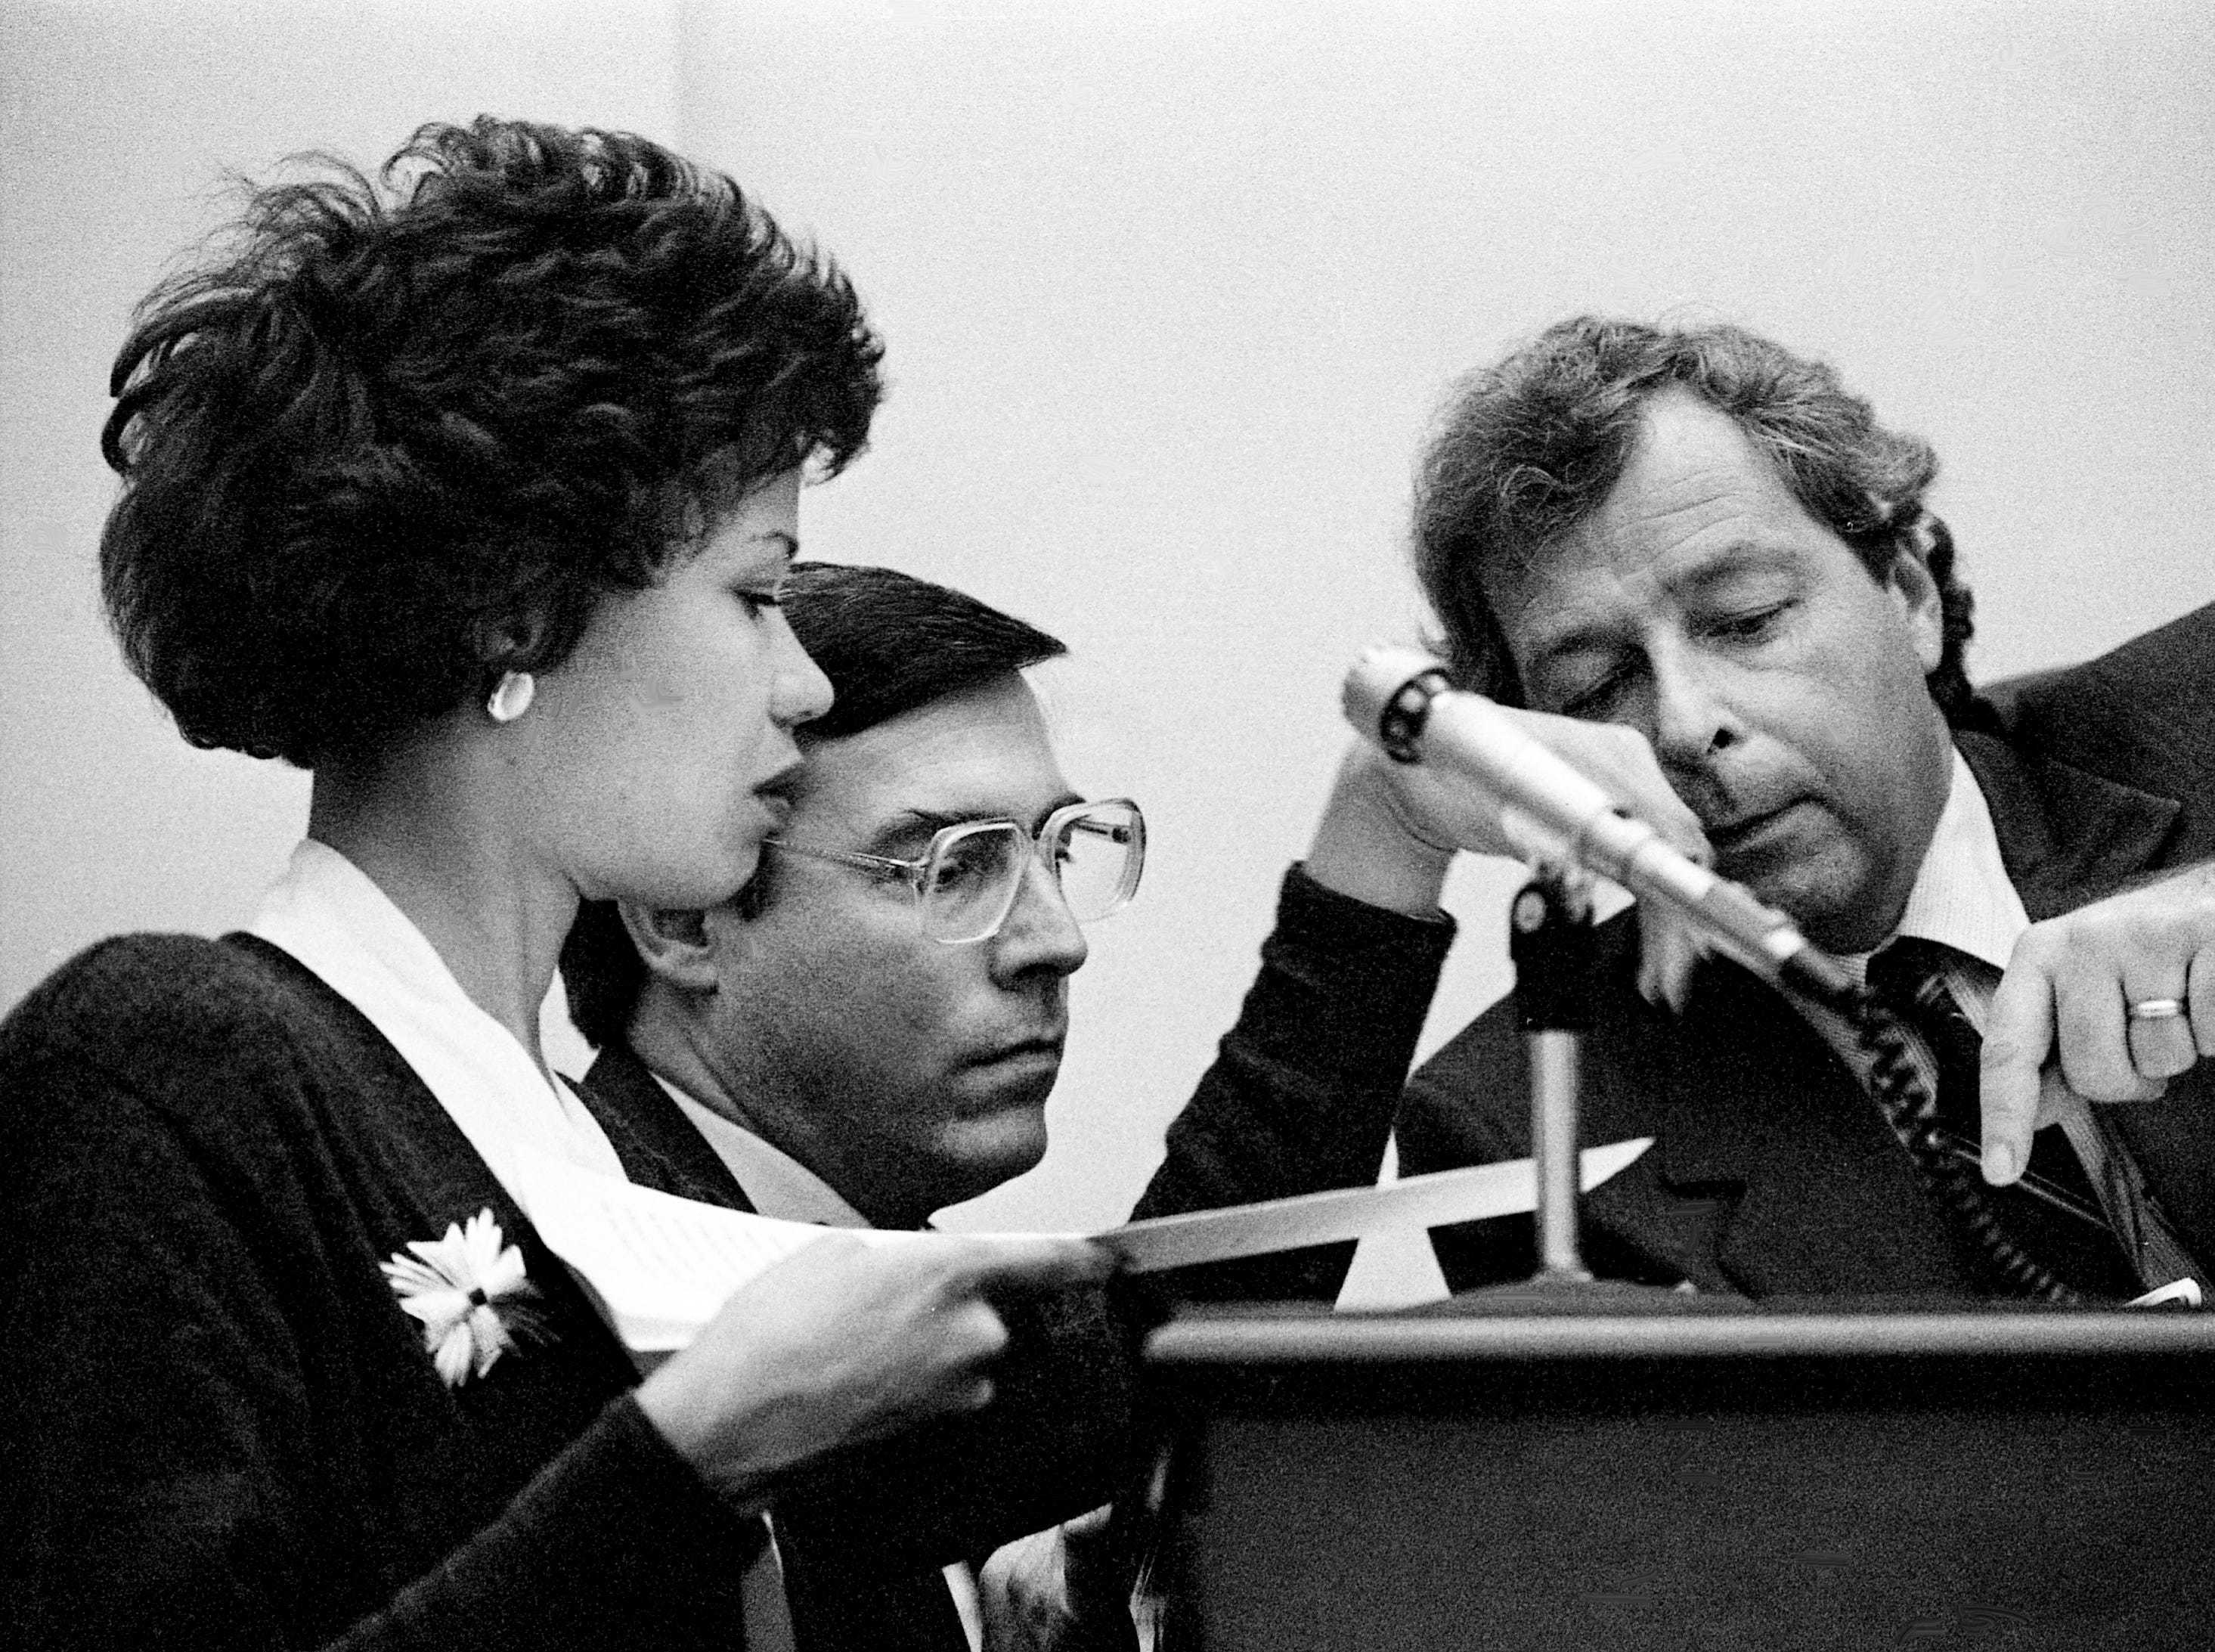 Metro Law Director Susan Short, left, confers with acting Metro Finance Director Gene Noln and Don Jones, attorney and staff director to the Metro Council, about where Mayor Bill Boner can legally order the condemnation of property for landfill testing without the approval of the council during a meeting at the Metro Courthouse on Feb. 7, 1989.